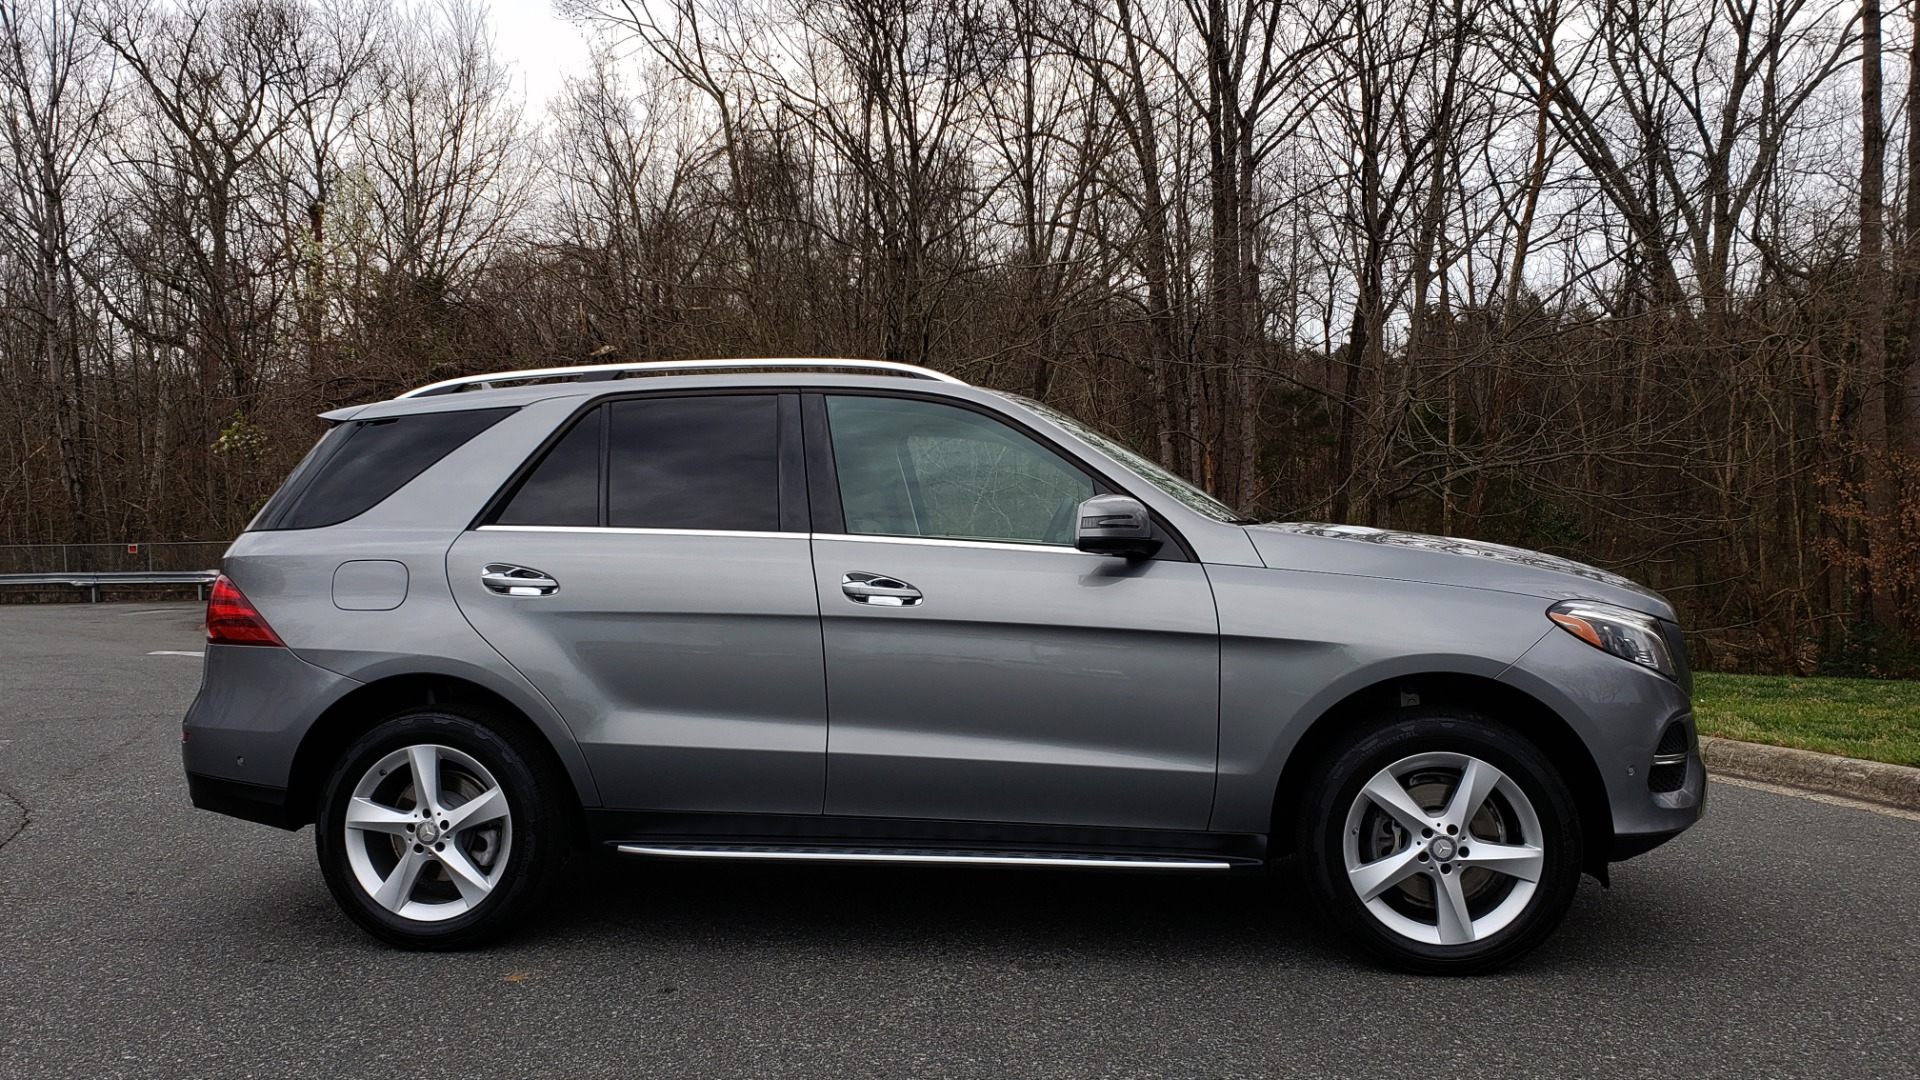 Used 2016 Mercedes-Benz GLE 350 4MATIC / PREMIUM / LIGHTING / NAV / SUNROOF / HTD STS / REAR for sale Sold at Formula Imports in Charlotte NC 28227 5